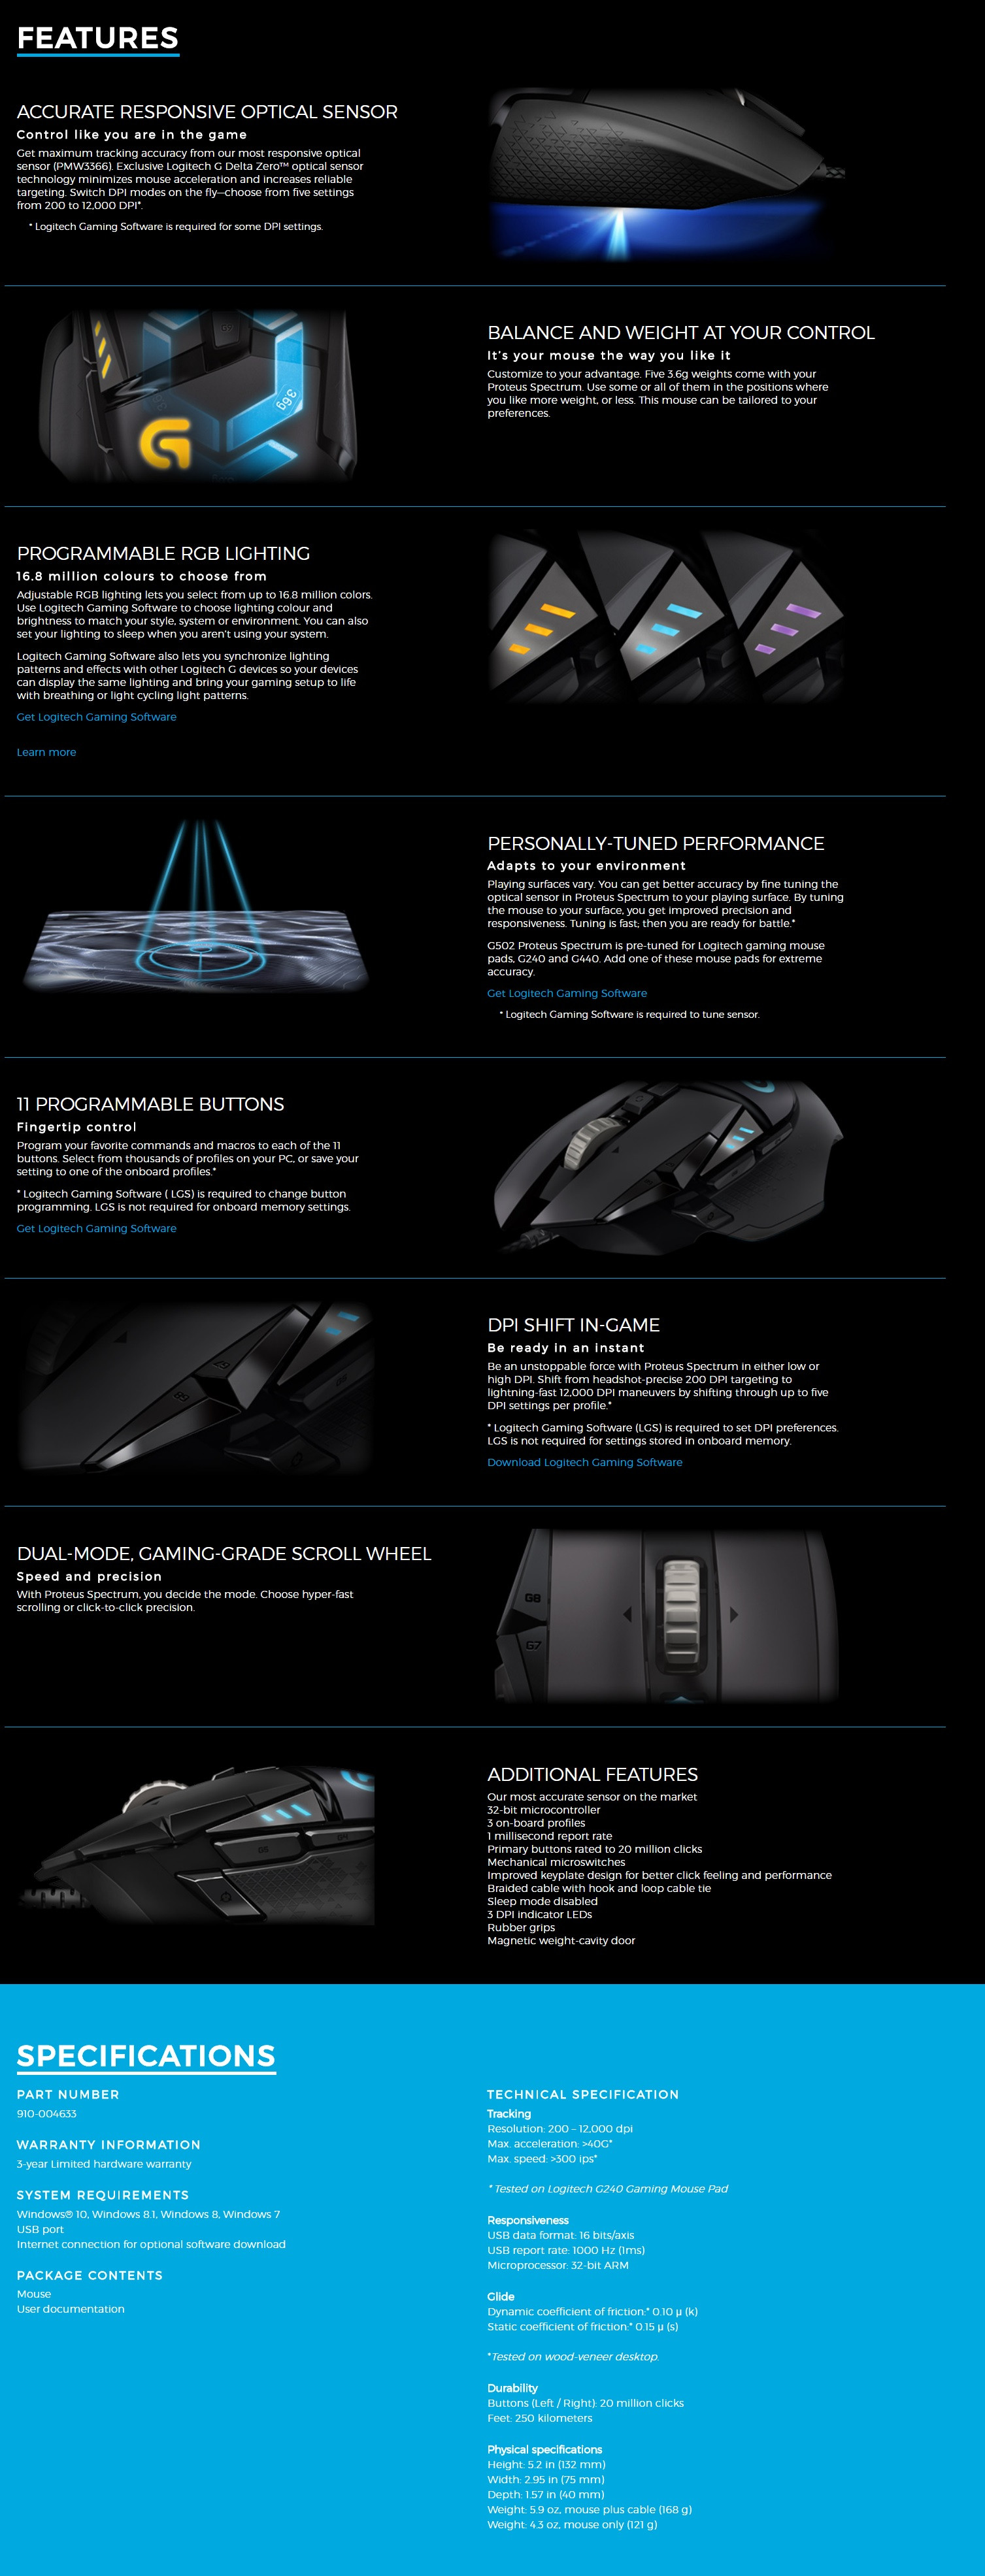 be7fcedfc58 Exclusive Logitech G Delta Zero™ optical sensor technology minimizes mouse  acceleration and increases reliable targeting. Switch DPI modes on the  fly—choose ...